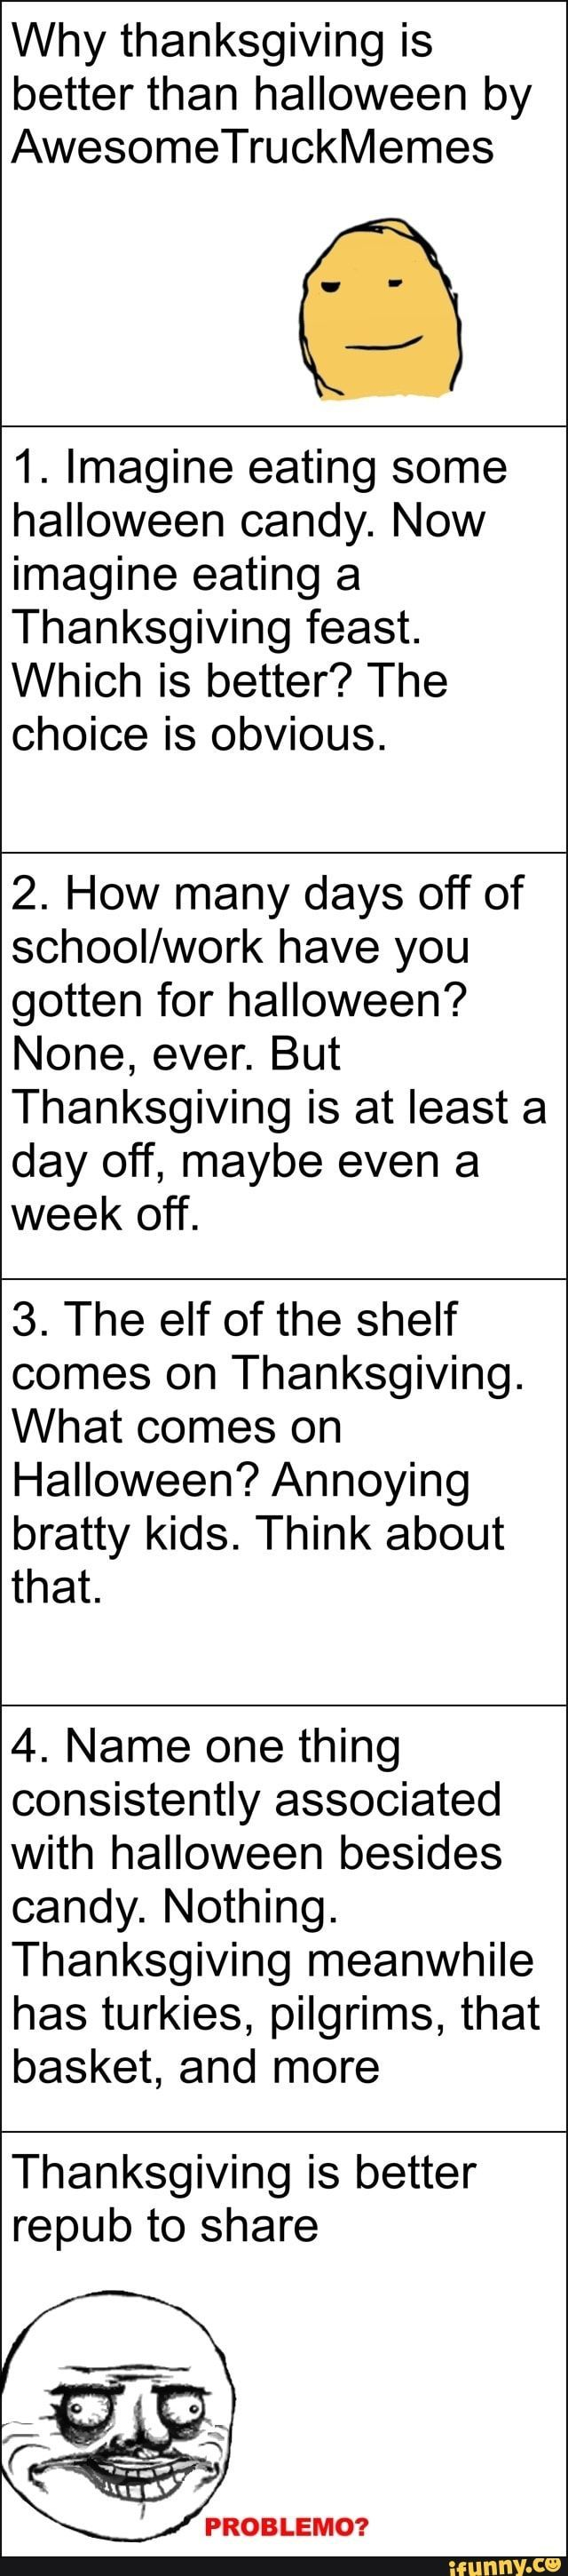 Why thanksgiving is better than halloween by AwesomeTruckMemes 1. Imagine eating some halloween candy. Now imagine eating a Thanksgiving feast. Which is better? The choice is obvious. 2. How many days off of schooI/work have you ... #jojosbizarreadventure #animemanga #alternatefeatures #rainbowsixseige #rwby #doge #skyrim #herobrinegang #apexlegends #fallout #angrybirds #jojosbizarreadventure #why #thanksgiving #better #halloween #awesometruckmemes #imagine #eating #candy #now #feast #meme #hall